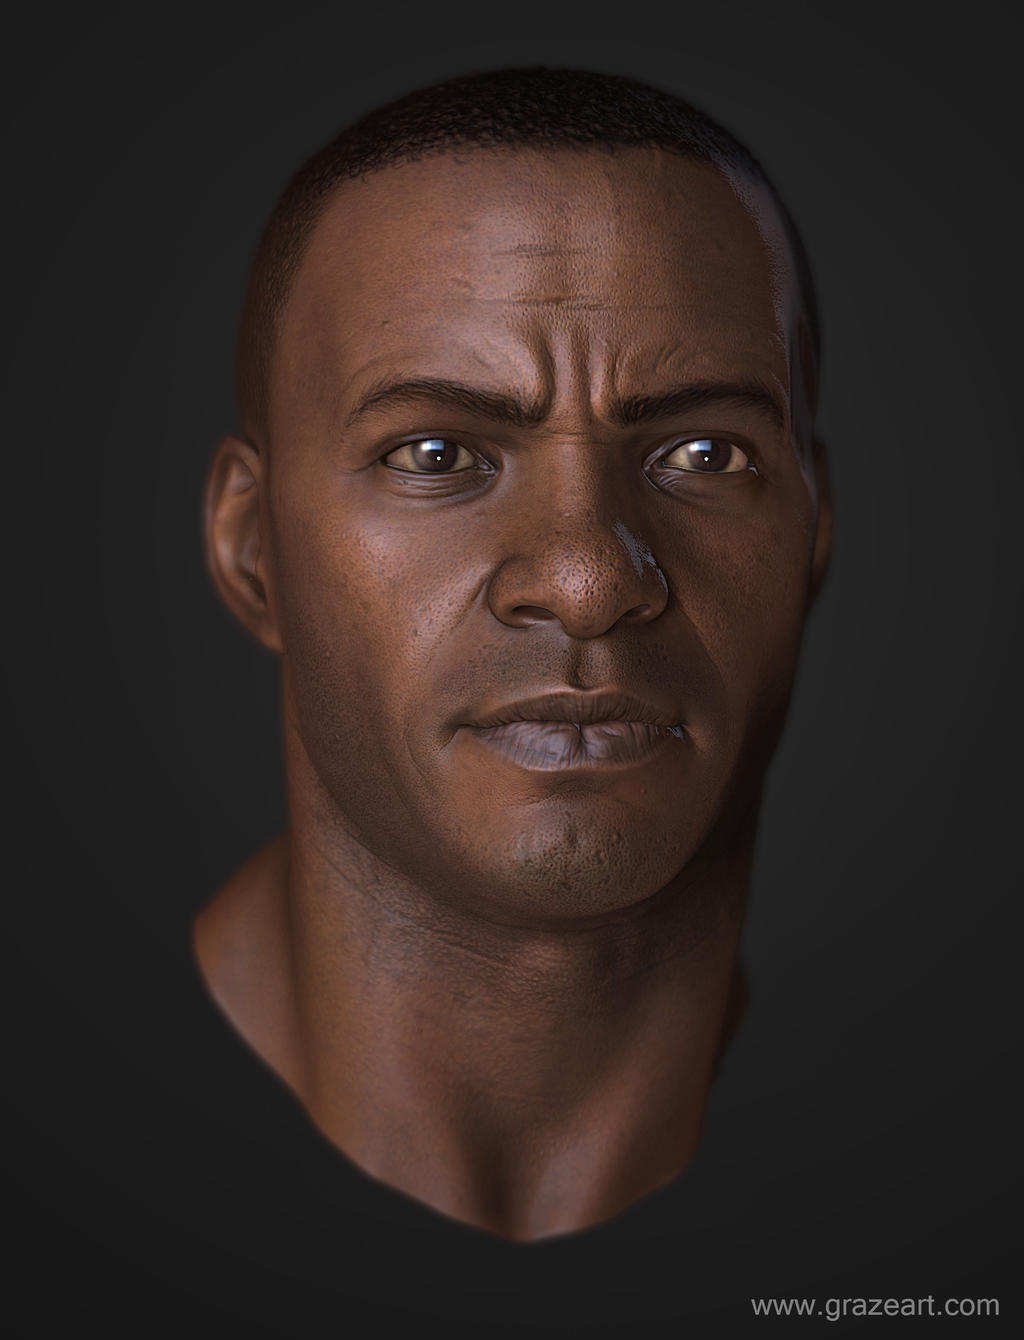 Black guy Rendered by Grazeart on DeviantArt